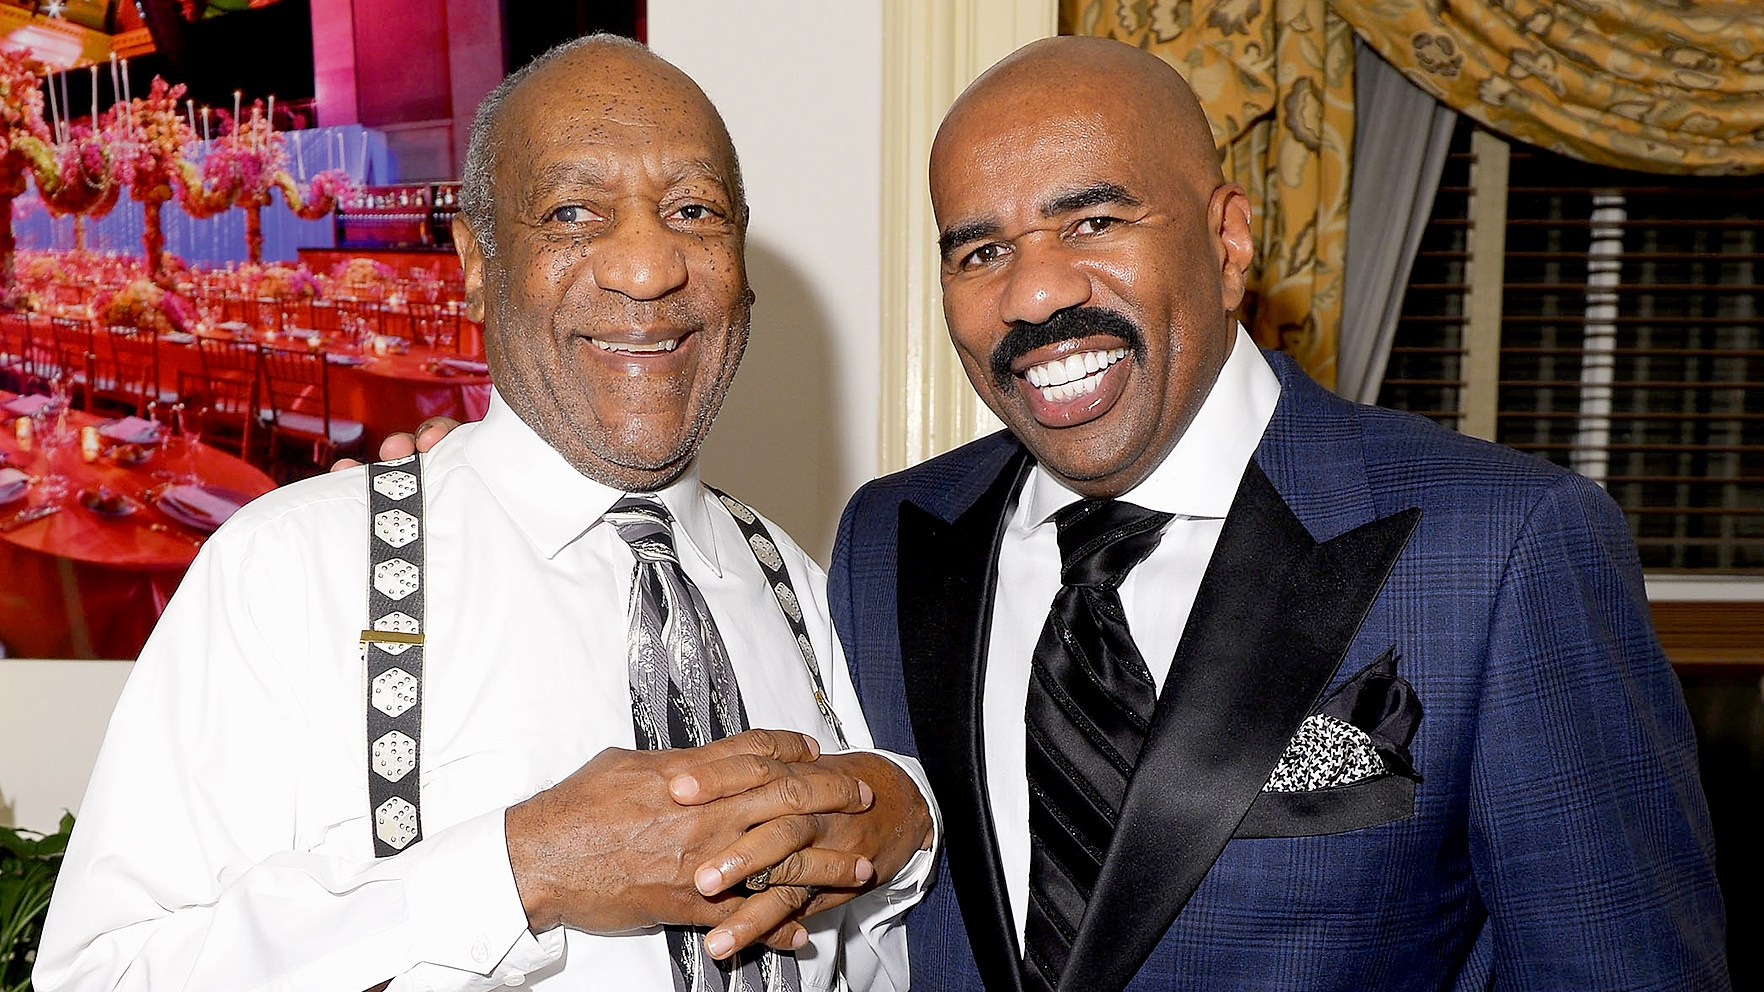 Bill Cosby and Steve Harvey attend Screen Gems Presents The Steve & Marjorie Harvey Foundation Gala at Cipriani Wall Street on May 14, 2012 in New York City.